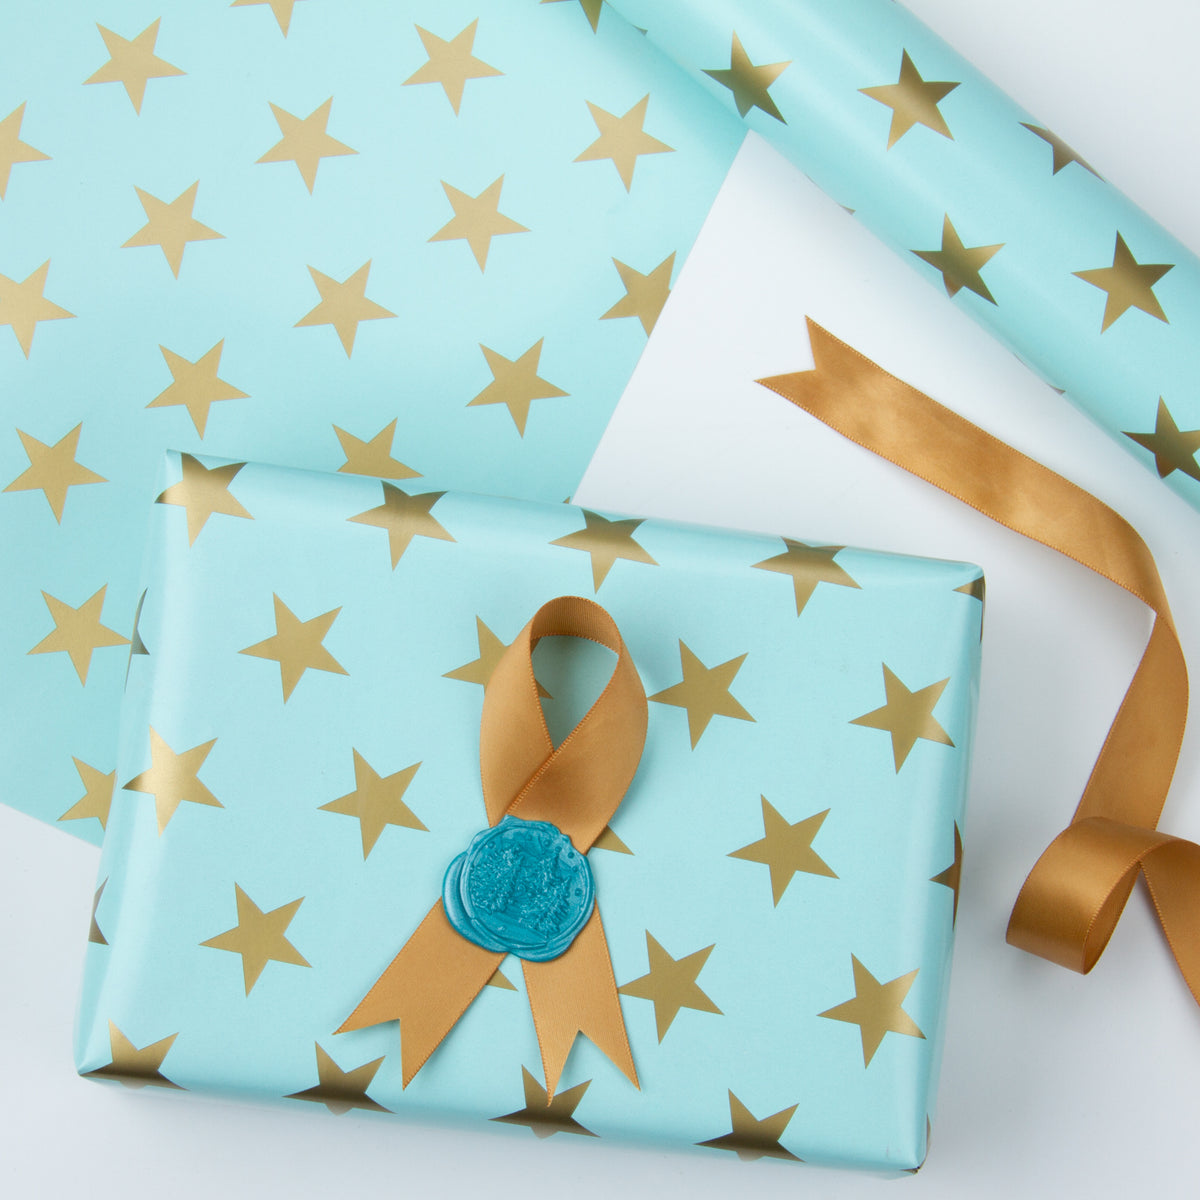 Wrapaholic-Mint-Color- with-Gold-Print Star-Design-Gift -Wrapping-Paper-Roll-3